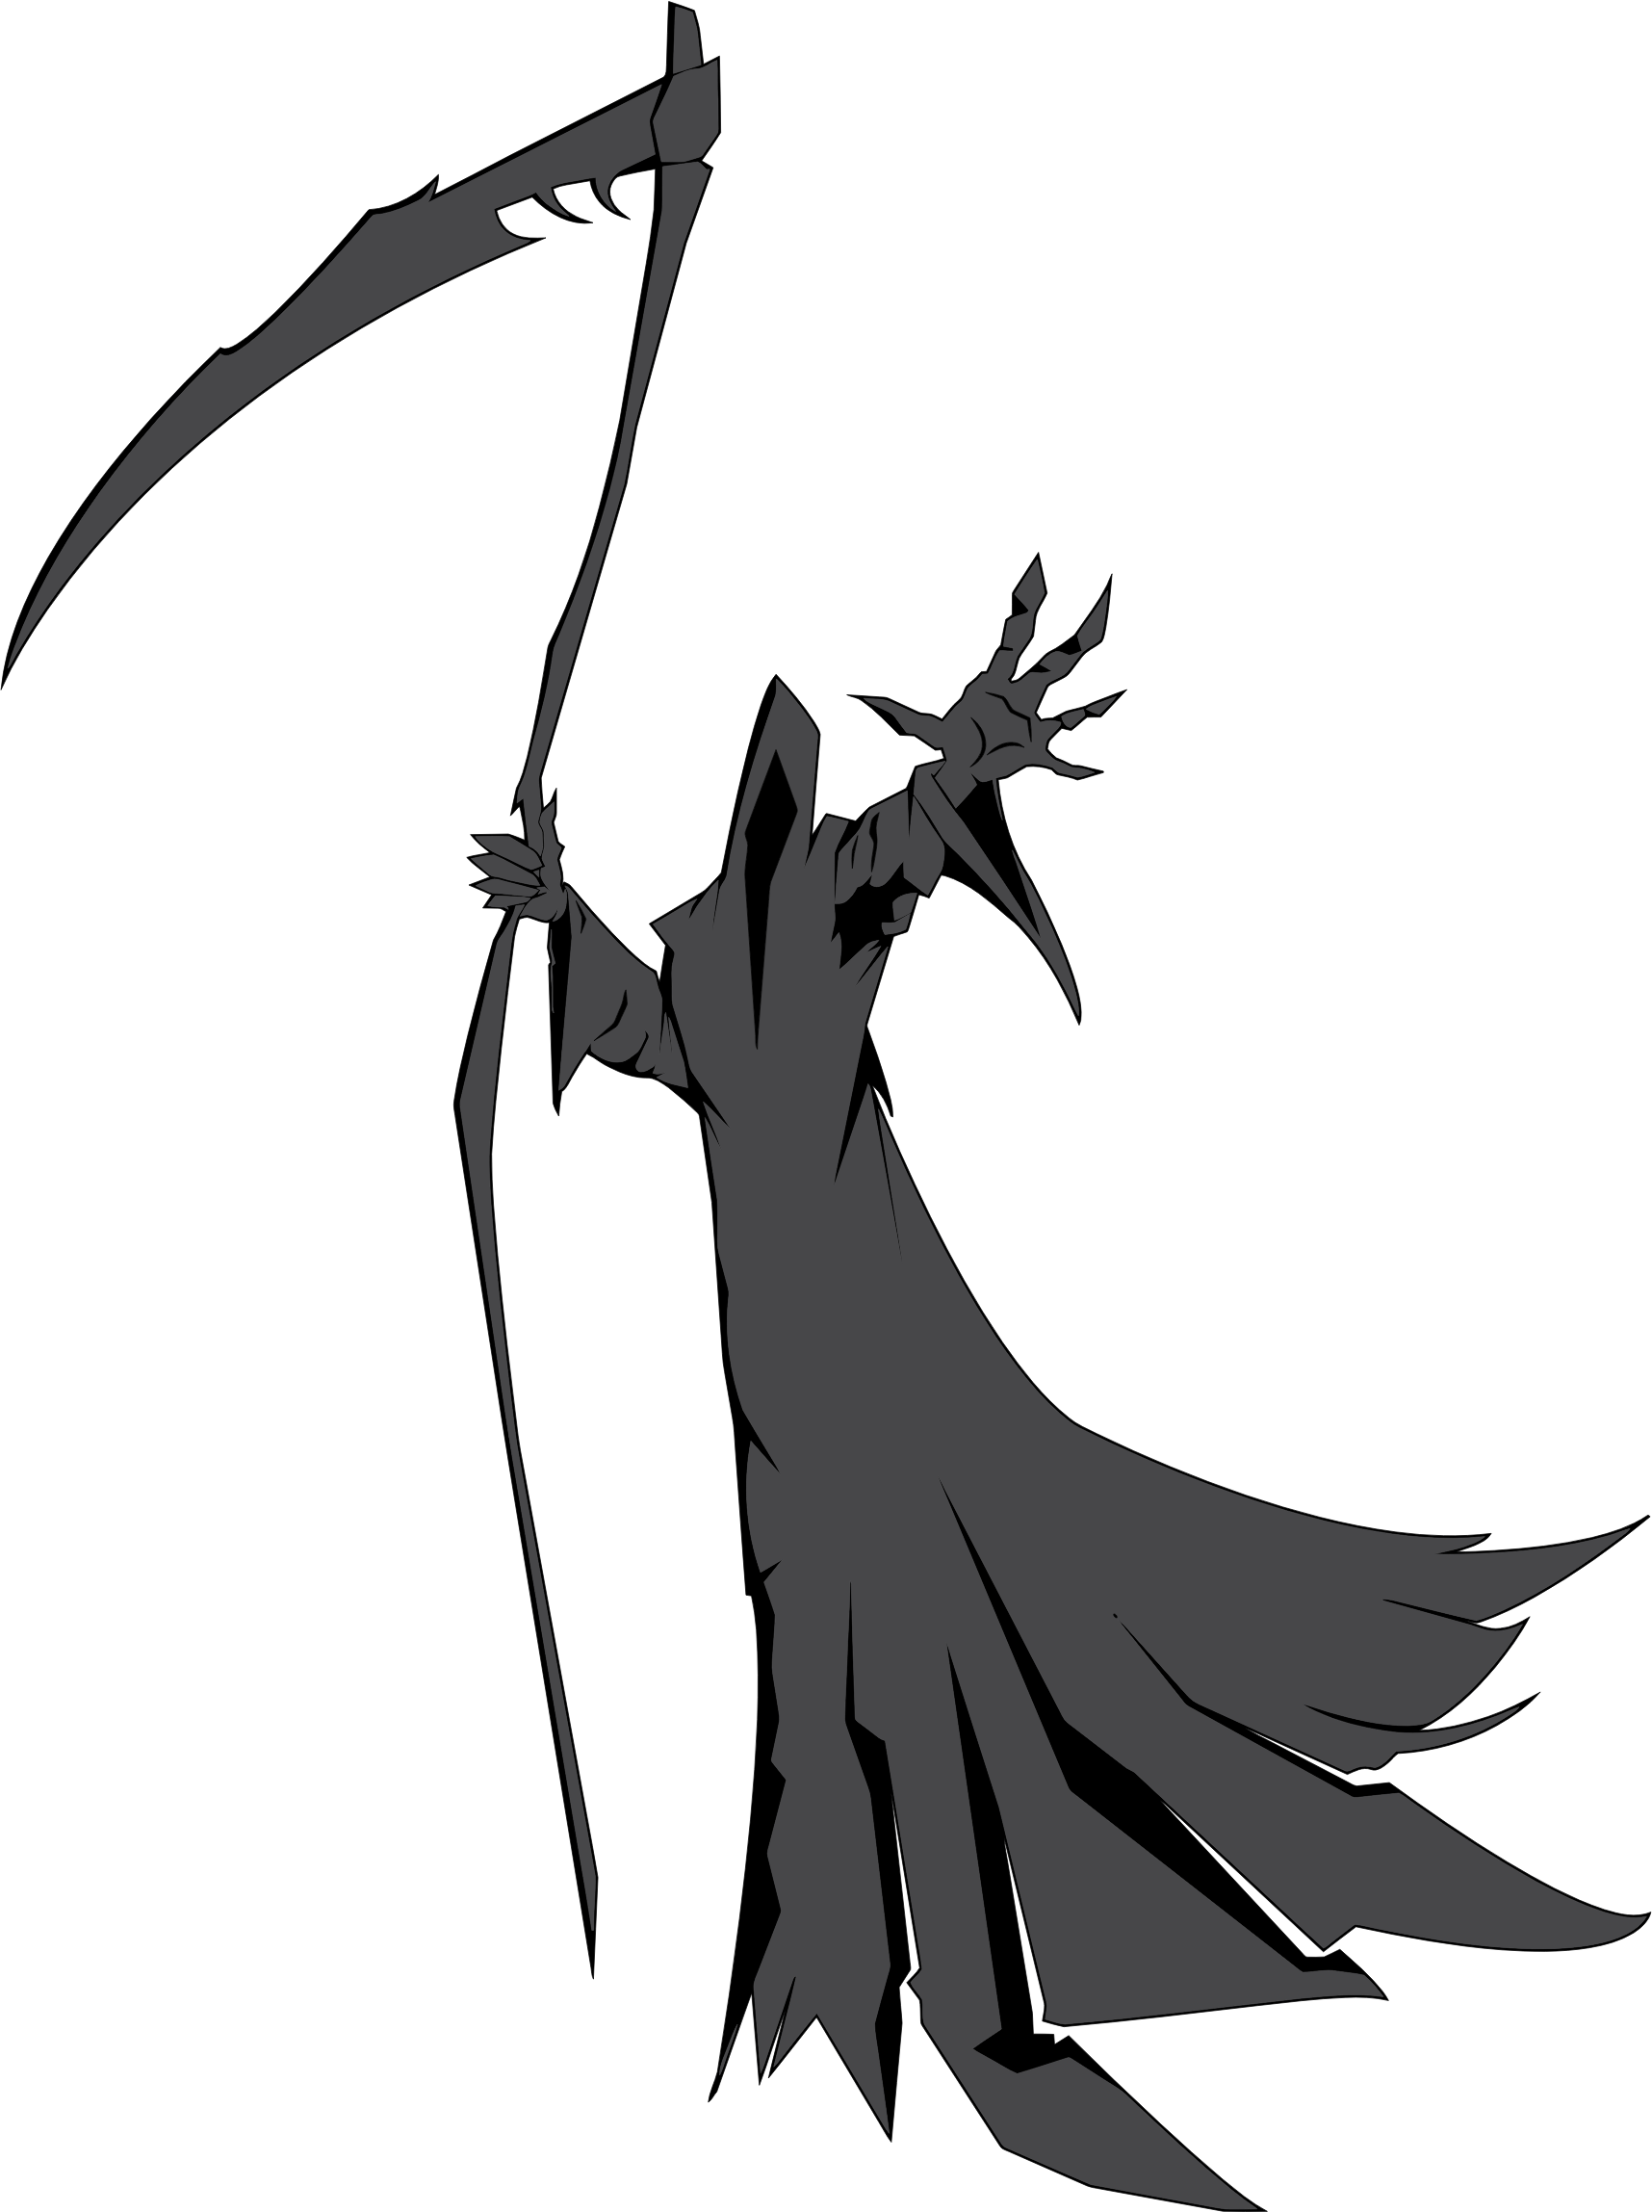 svg royalty free stock Illustration big image png. Grim reaper clipart silhouette